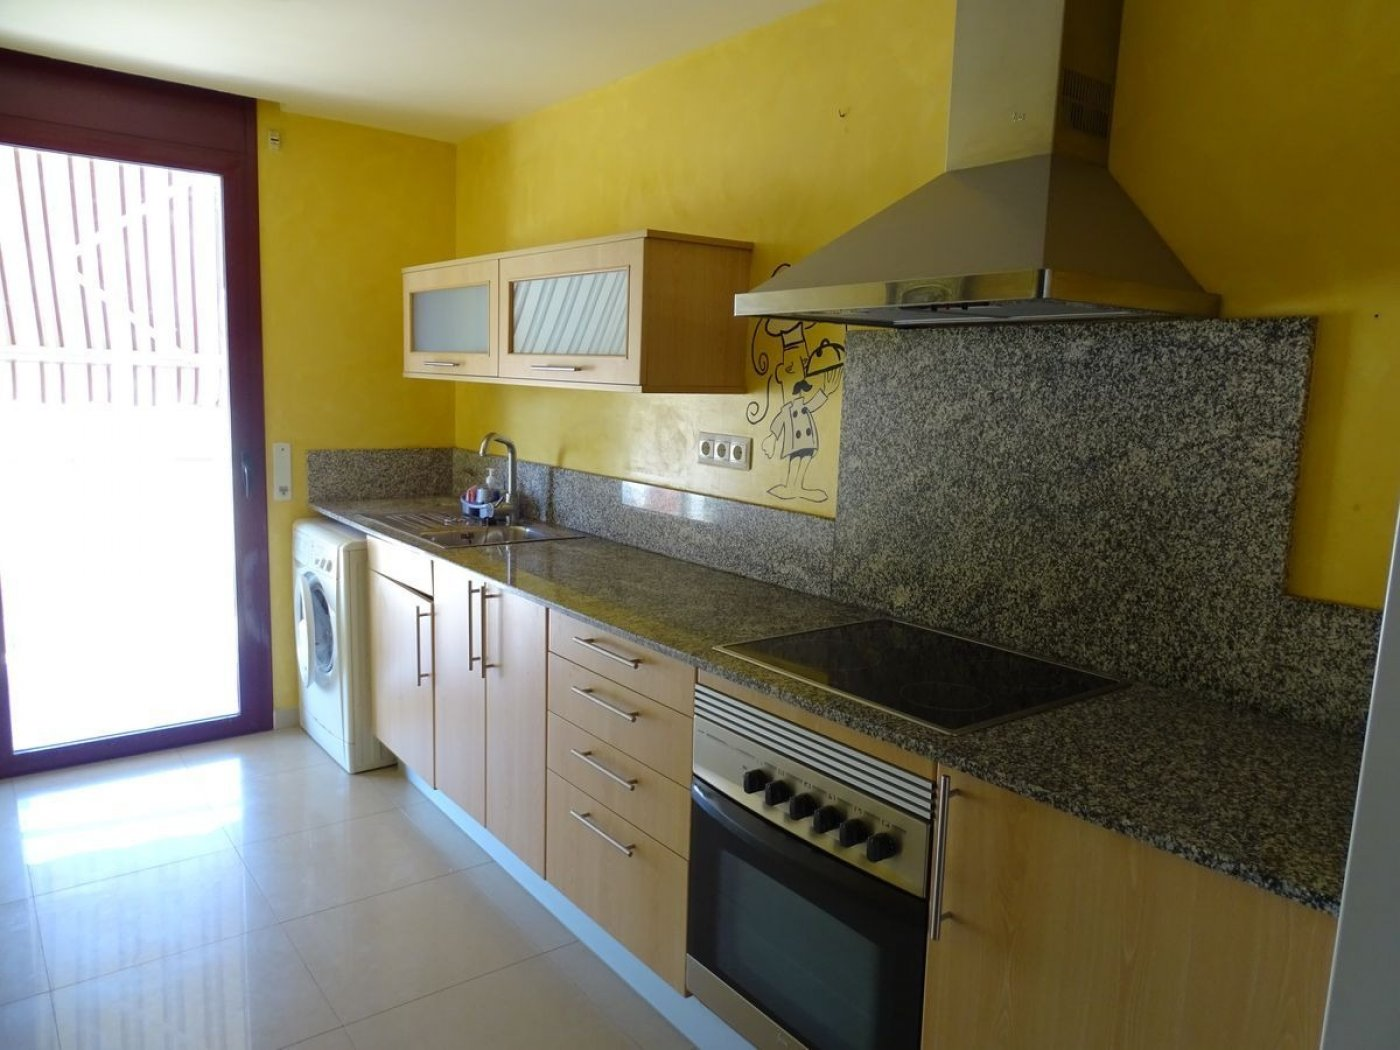 Flat for sale in *PUERTO, Sant Carles de la Rapita